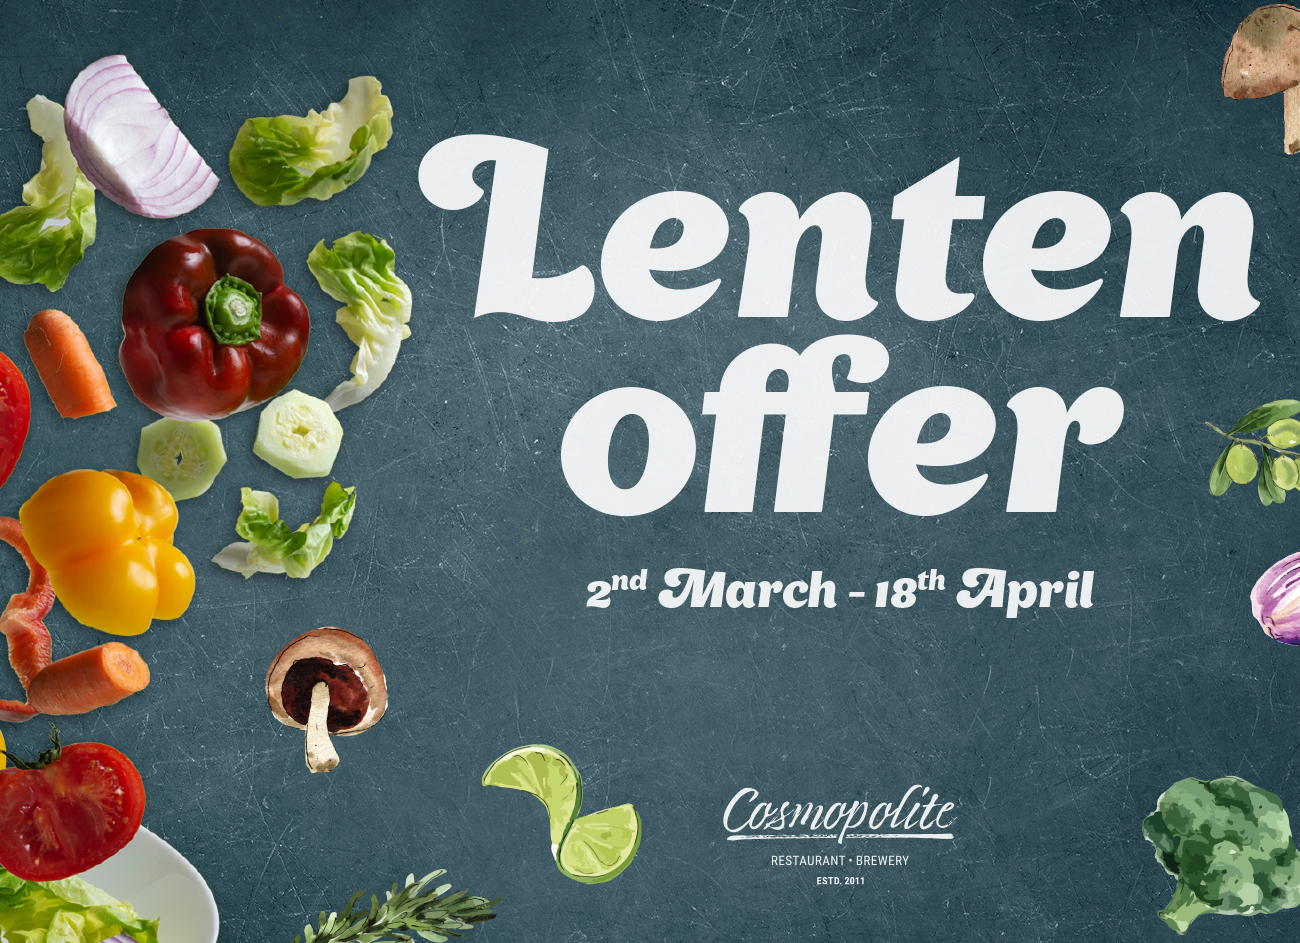 Introducing the Lenten offer at Cosmopolite